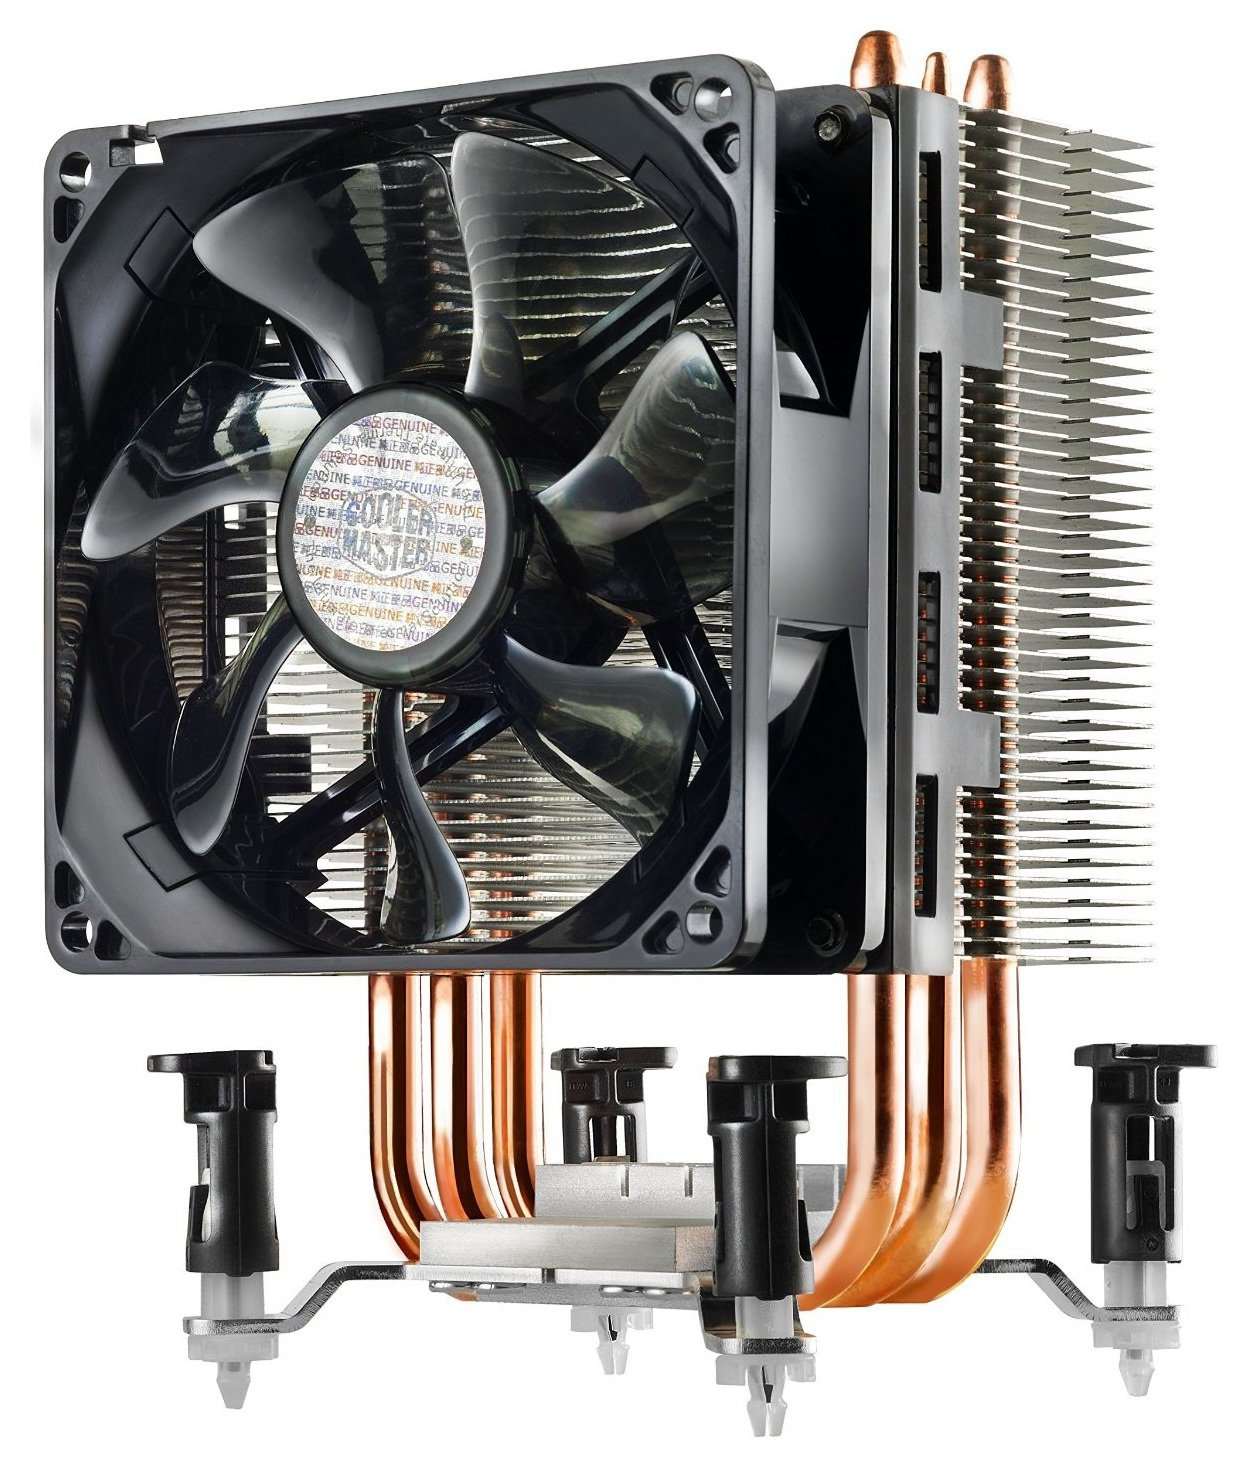 Image of Cooler Master Hyper TX3 Evo 3 CPU Cooler.